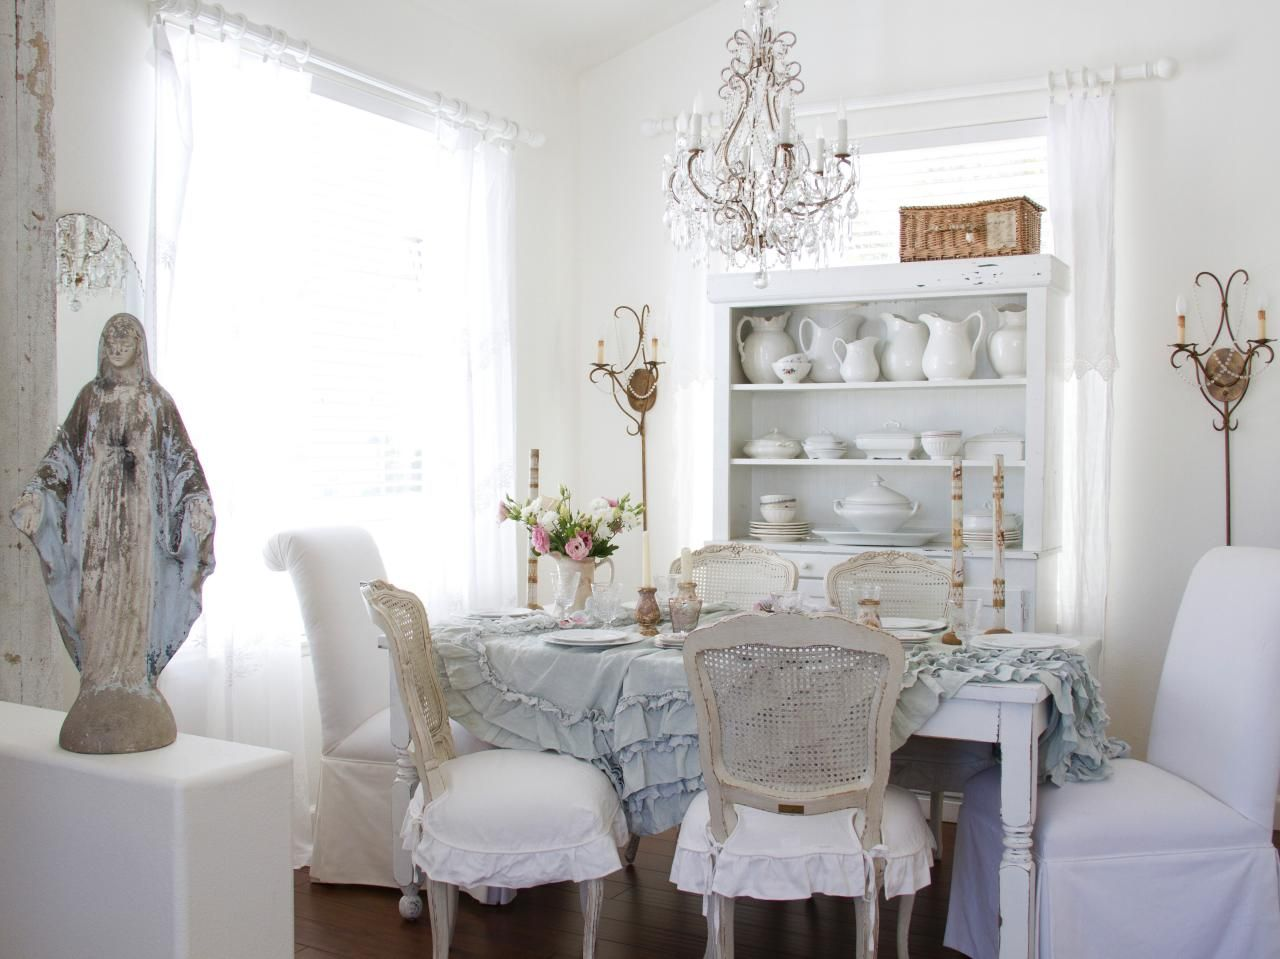 This All White Shabby Chic Dining Room Features A Ruffled Tablecloth,  Vintage Cane Back Chairs And Antique Accessories, Including A Beautiful  Display Of ...